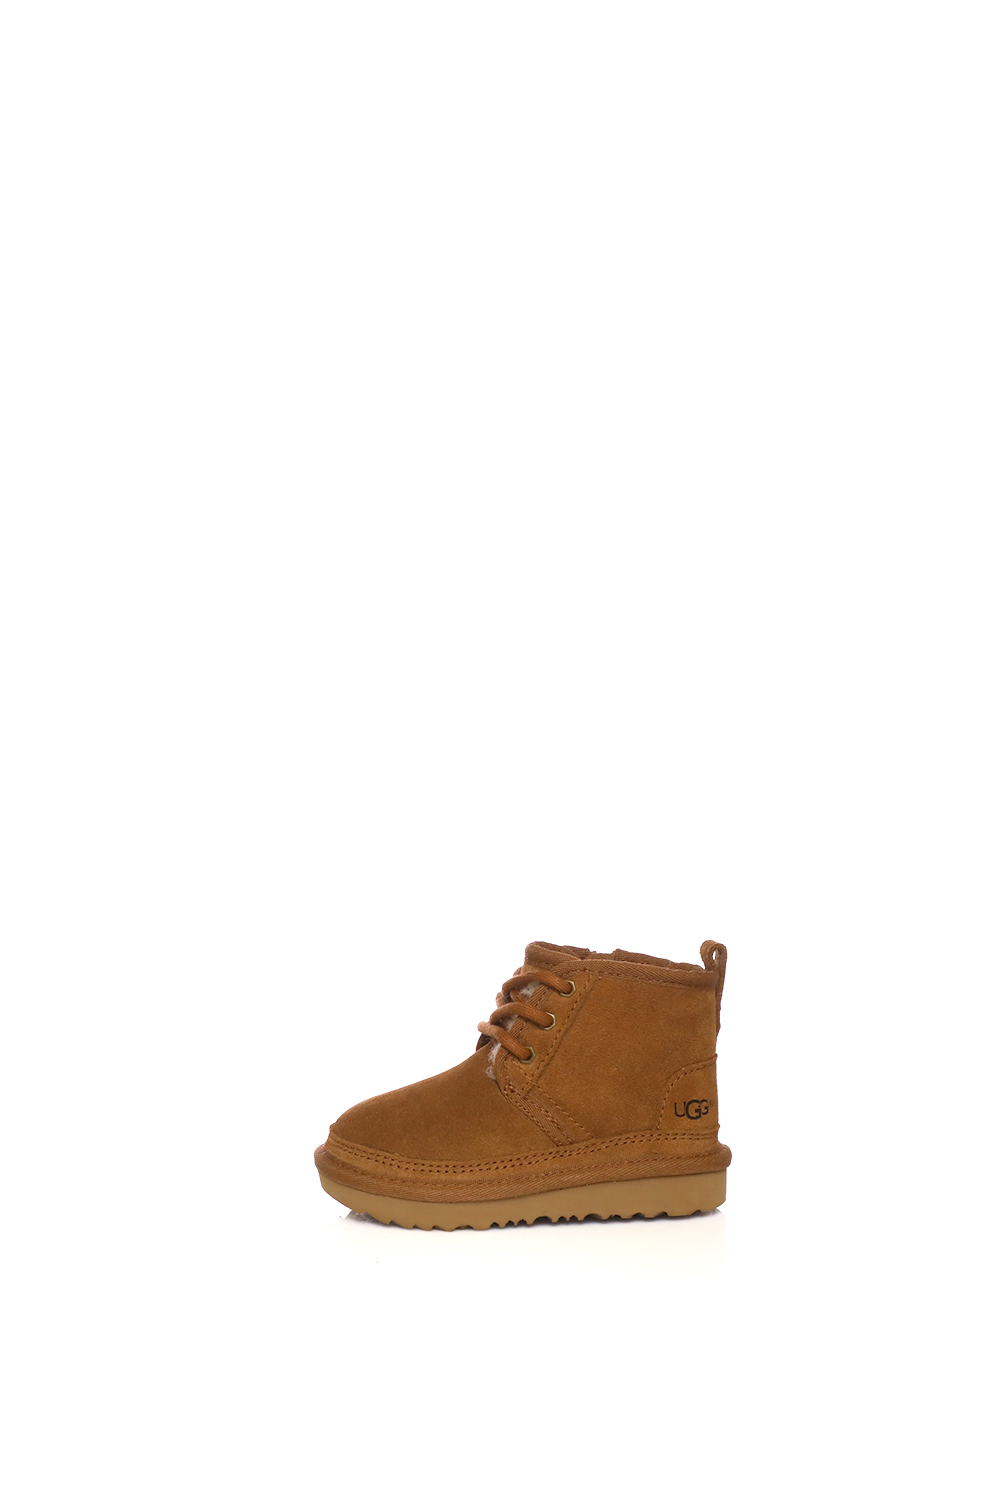 6a158232e86 UGG - Παιδικά δερμάτινα μποτάκια NEUMEL II καφέ - Roe Shoes Collection